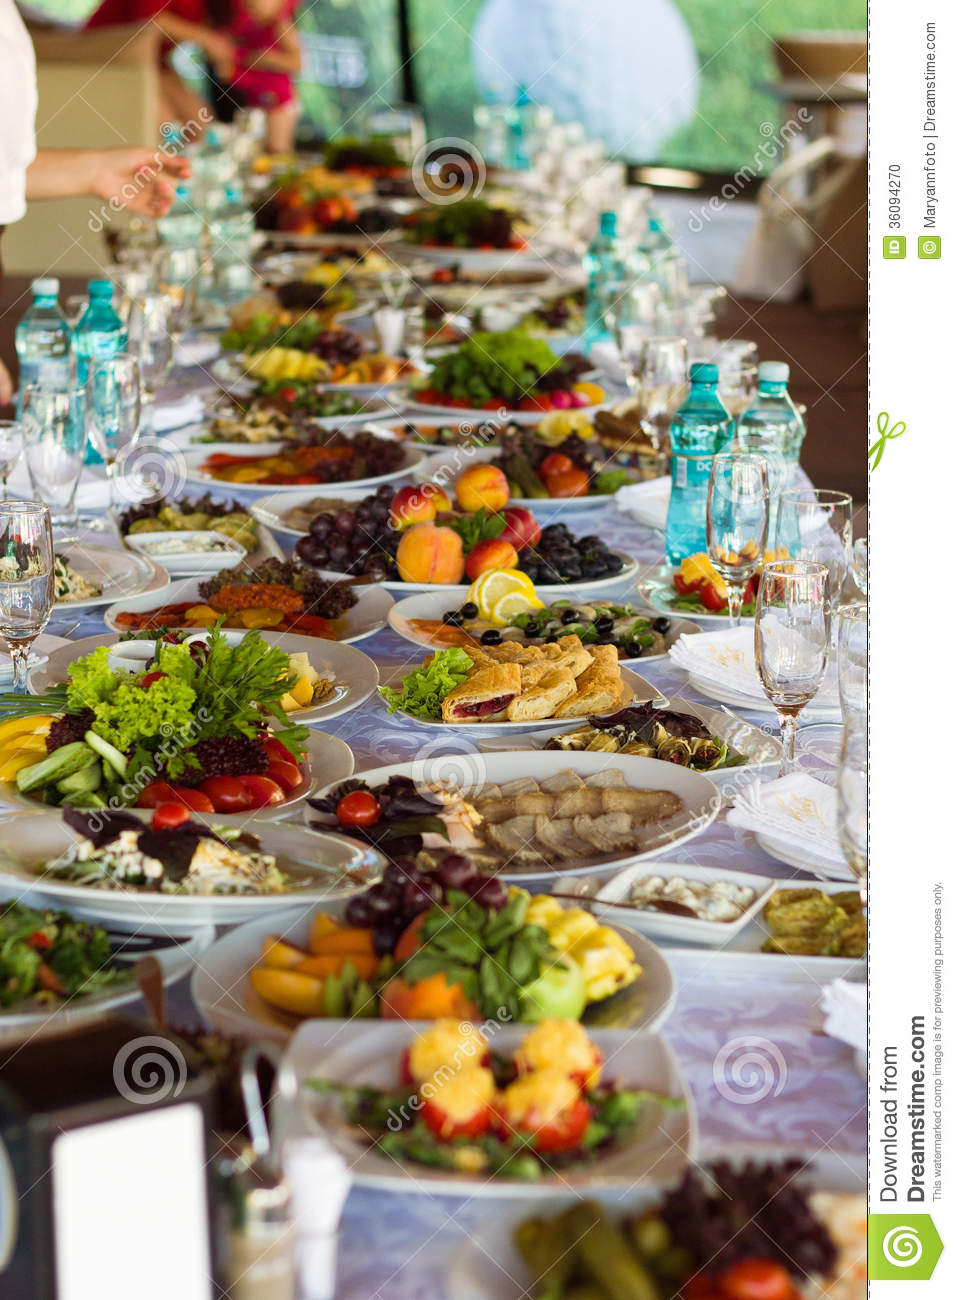 Festive Food Stock Photo Image 36094270 : festive food beautifully banquet table 36094270 from www.dreamstime.com size 957 x 1300 jpeg 196kB